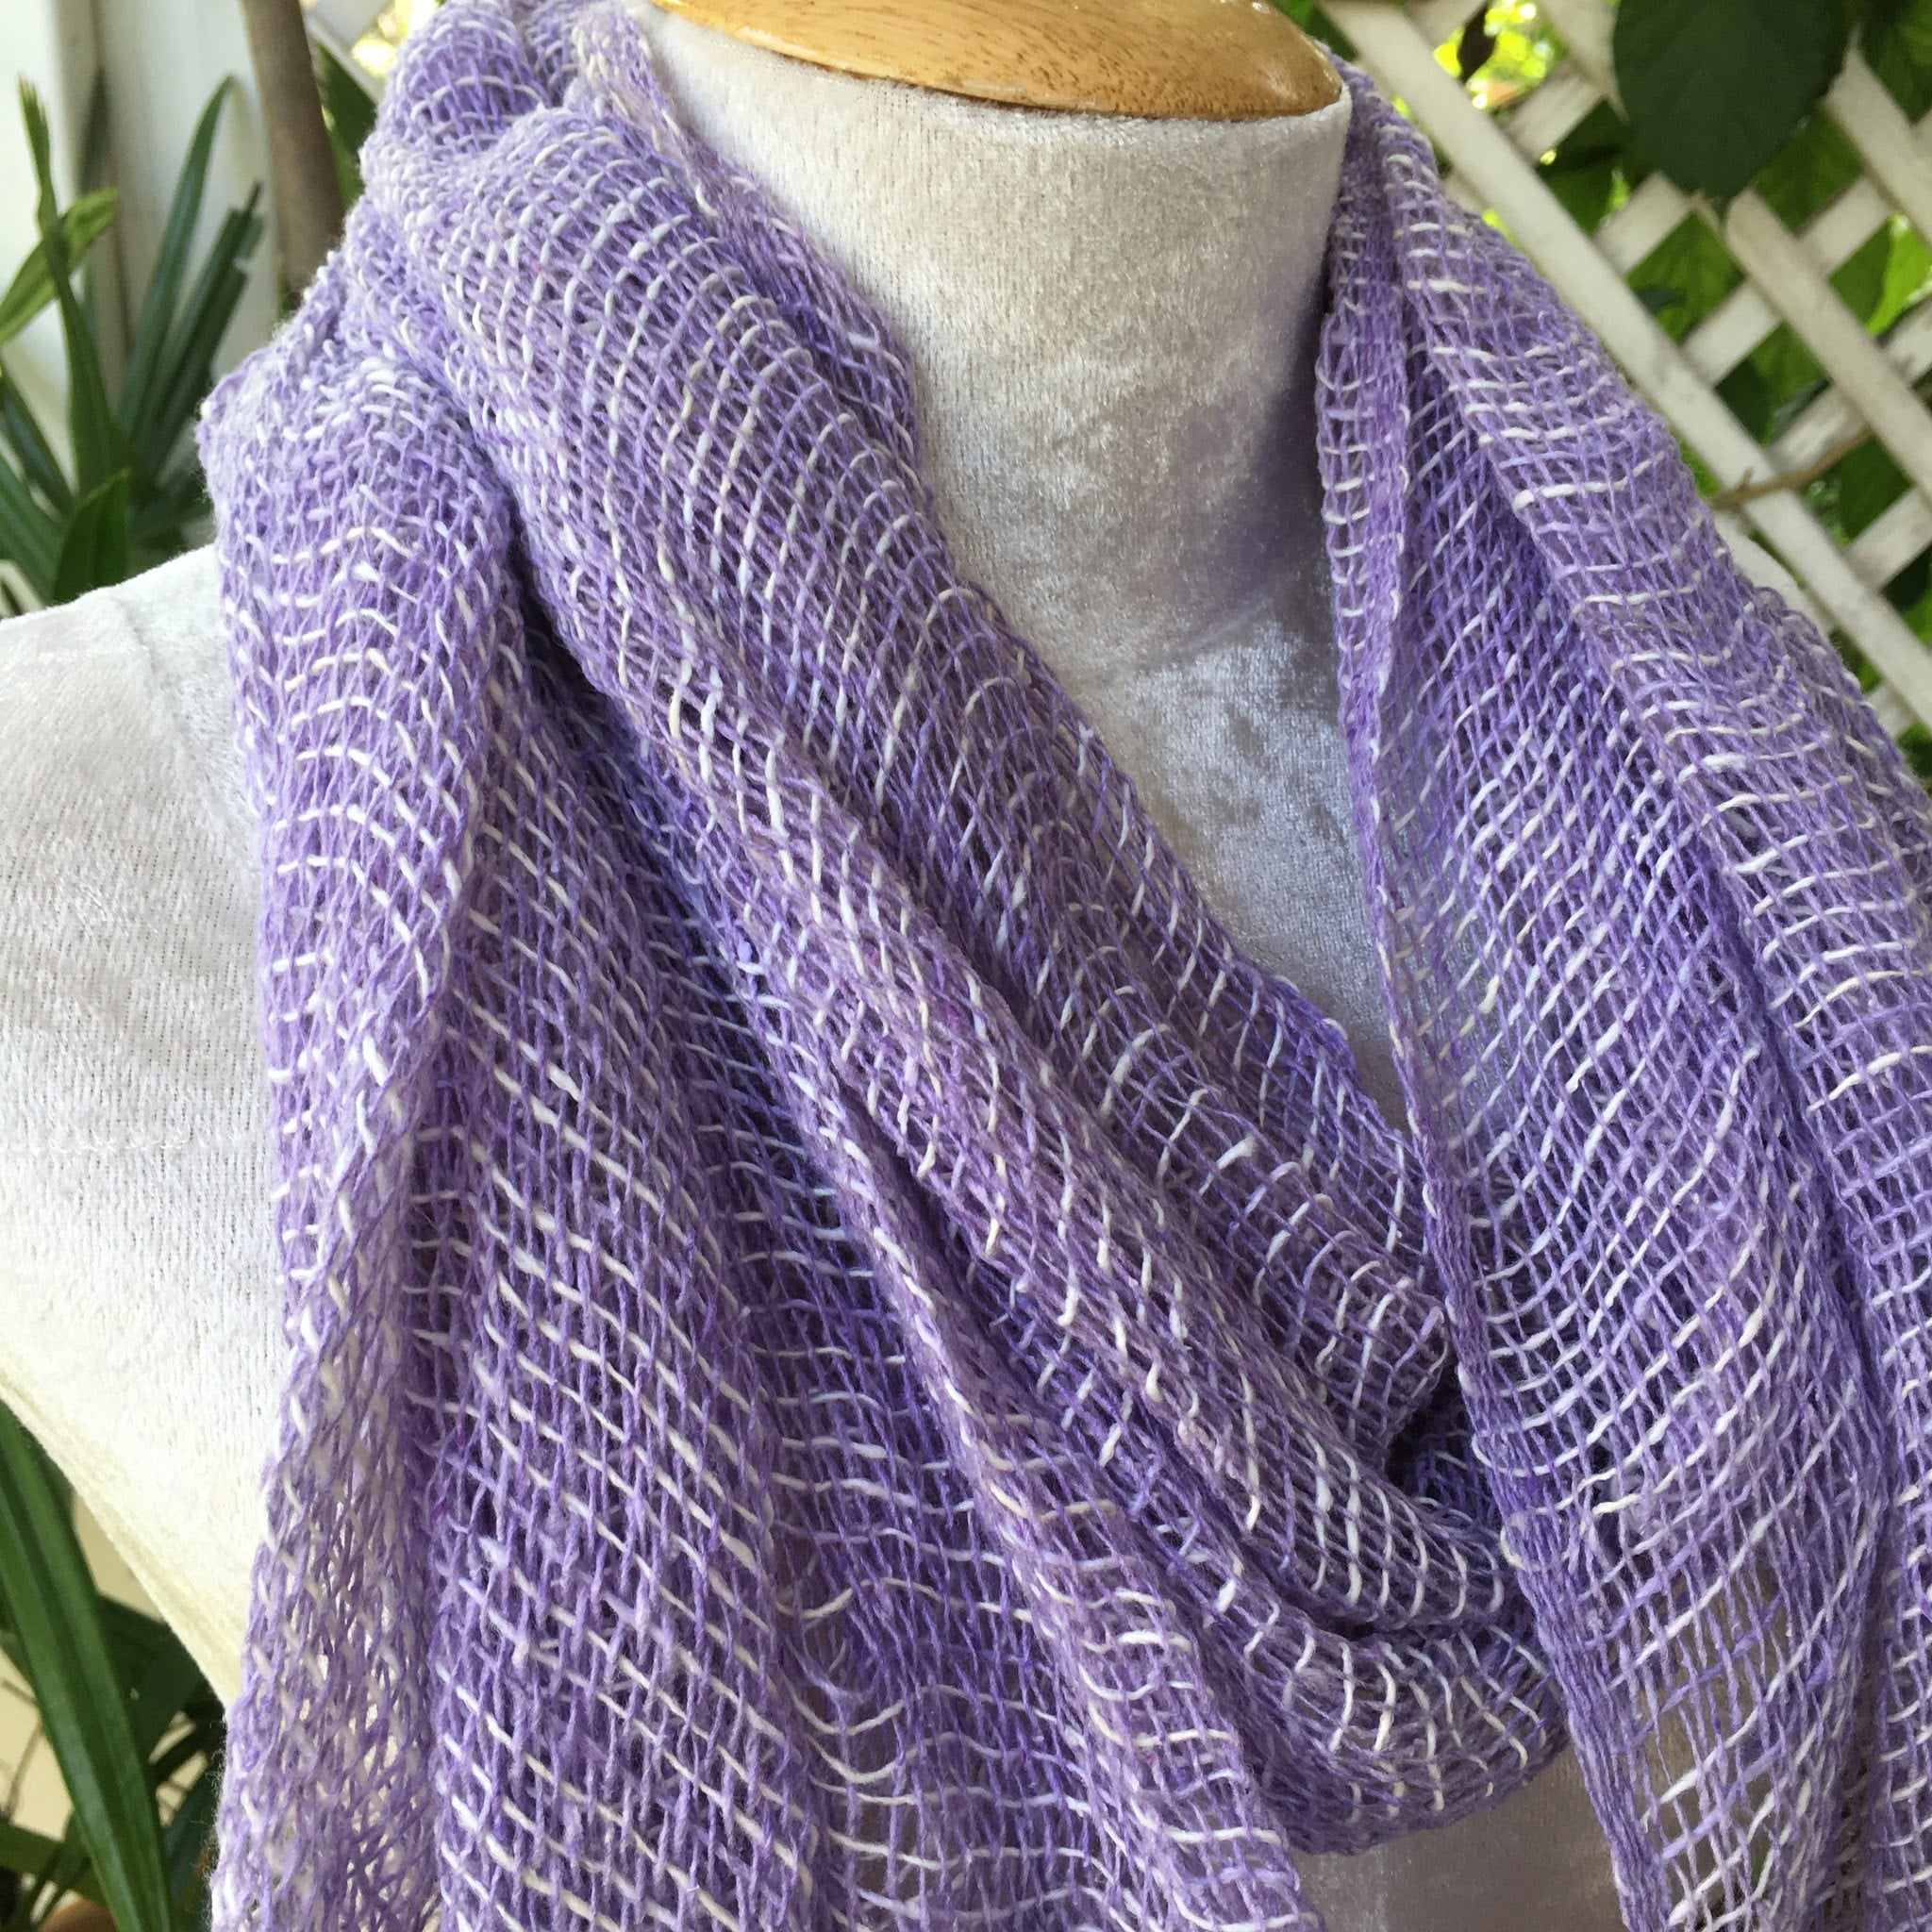 Scarf - Thai Organic Cotton Soft Hand Woven Scarf Shawl